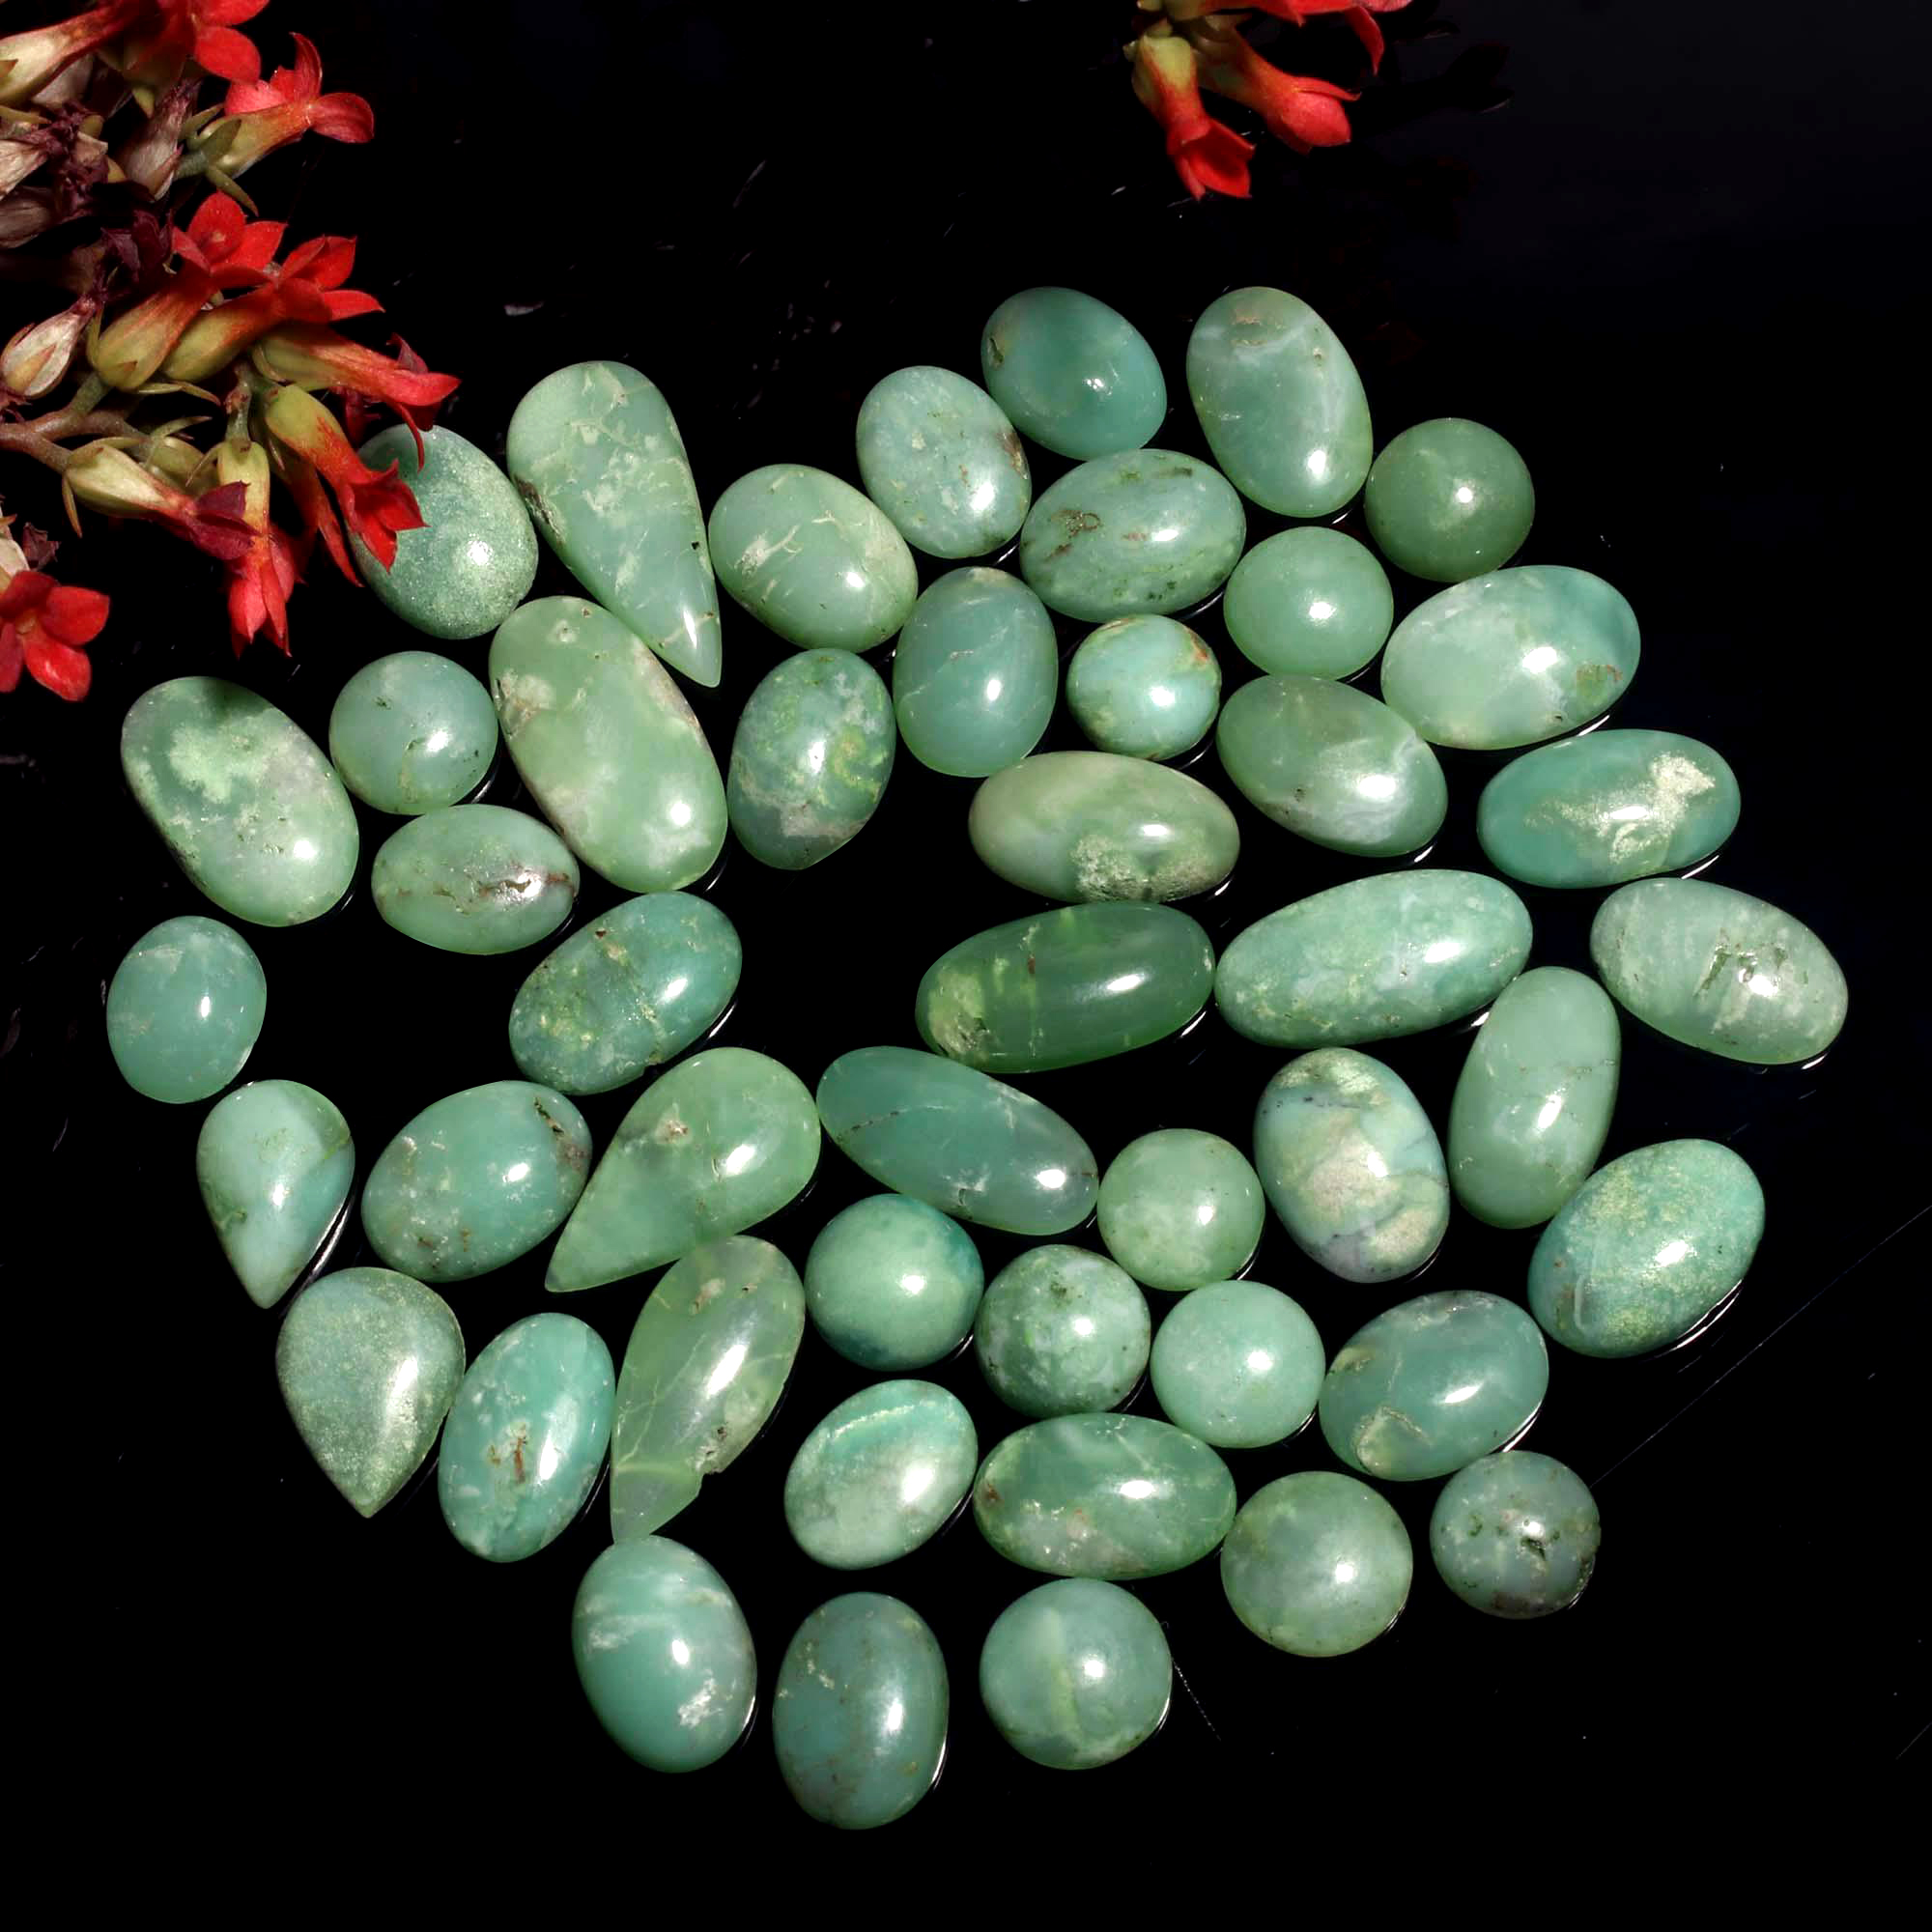 2 Pairs Chrysoprase Pair Lot of Cabochons